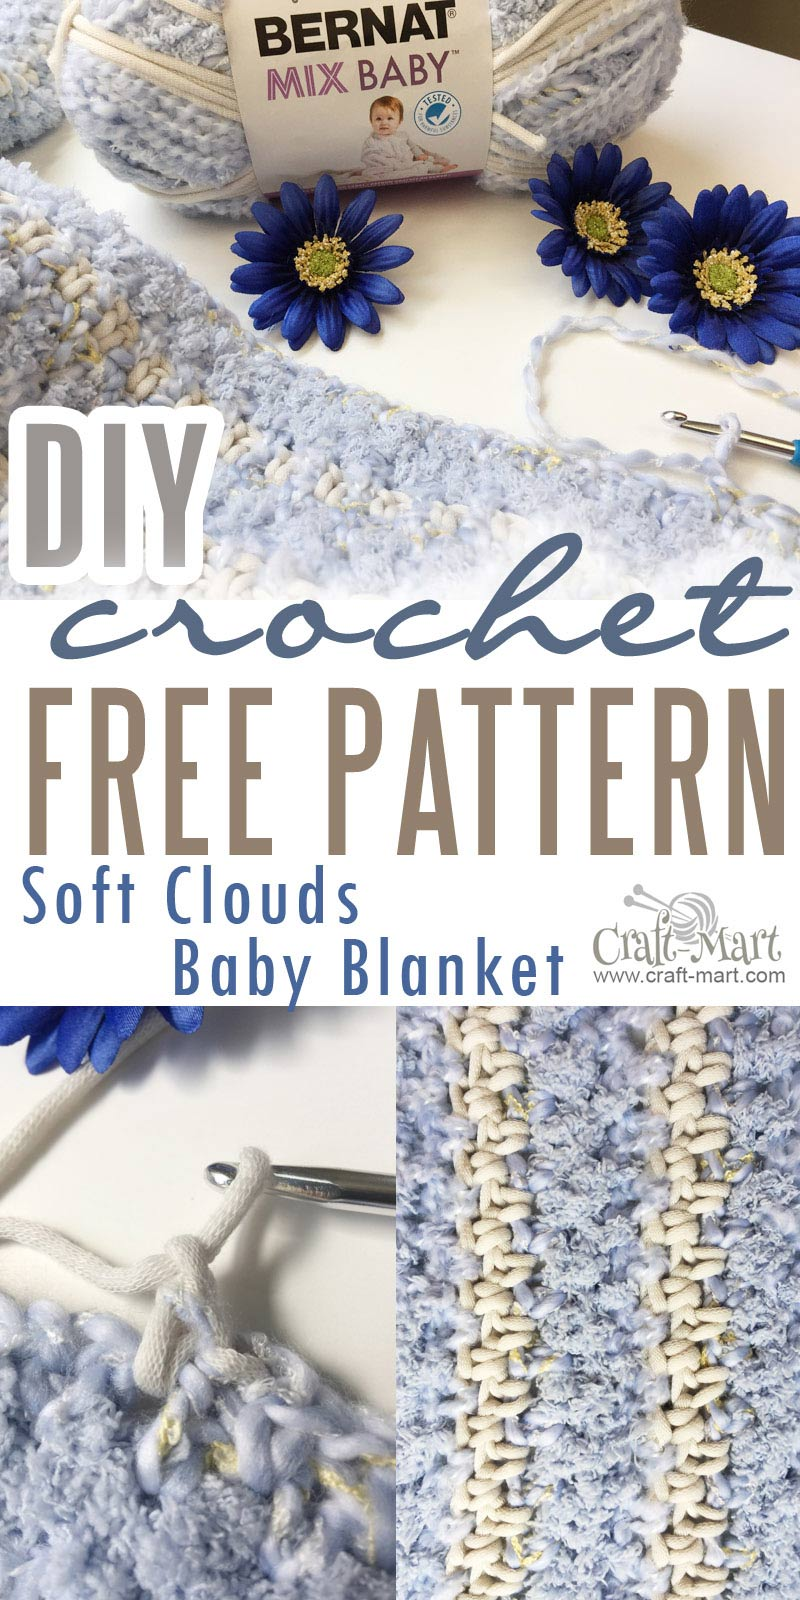 This is the fastest and easiest DIY Crochet Baby Blanket Pattern you will ever find! Crochet it with 3 skeins of Bernat Baby Mix Yarn - it so simple that even beginners will have no problems crocheting this beautiful, soft, and cuddly blanket. Perfect if you are in a hurry to finish a crochet blanket by the deadline. #crochetDIYbabyblanket #easycrochetblanket #diyproject #freecrochetblanketpattern